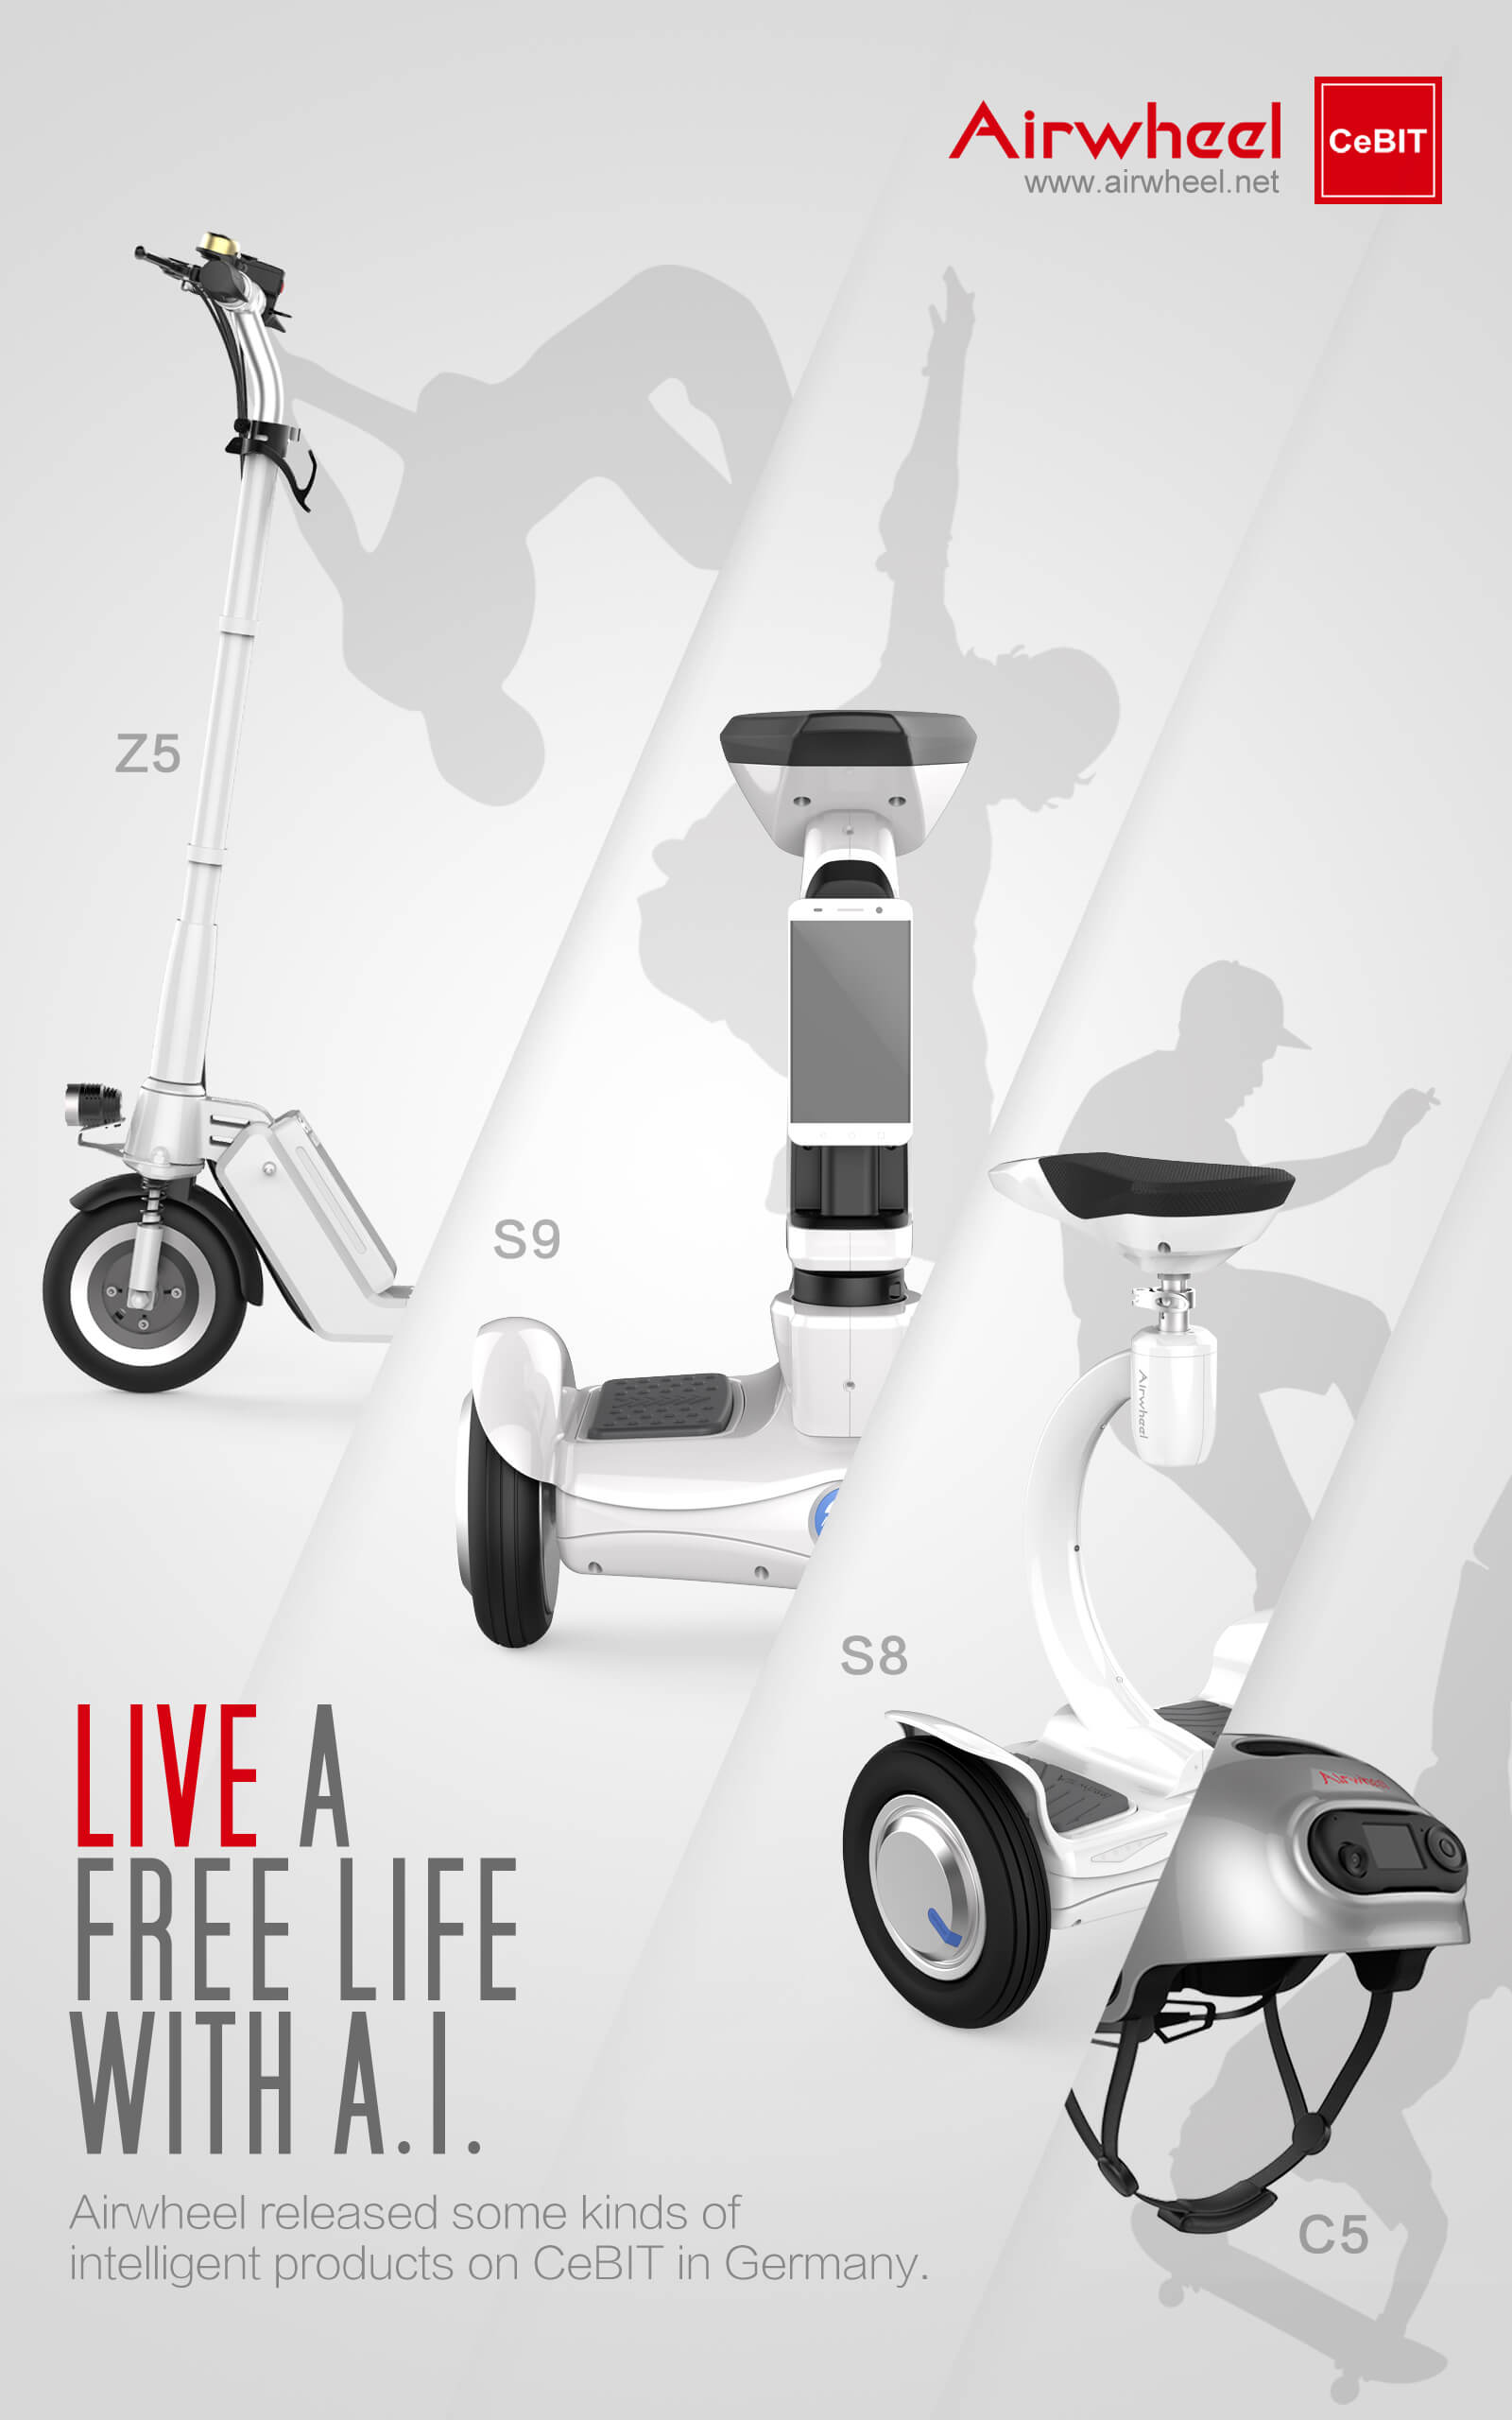 airwheel z5 electric standing scooter